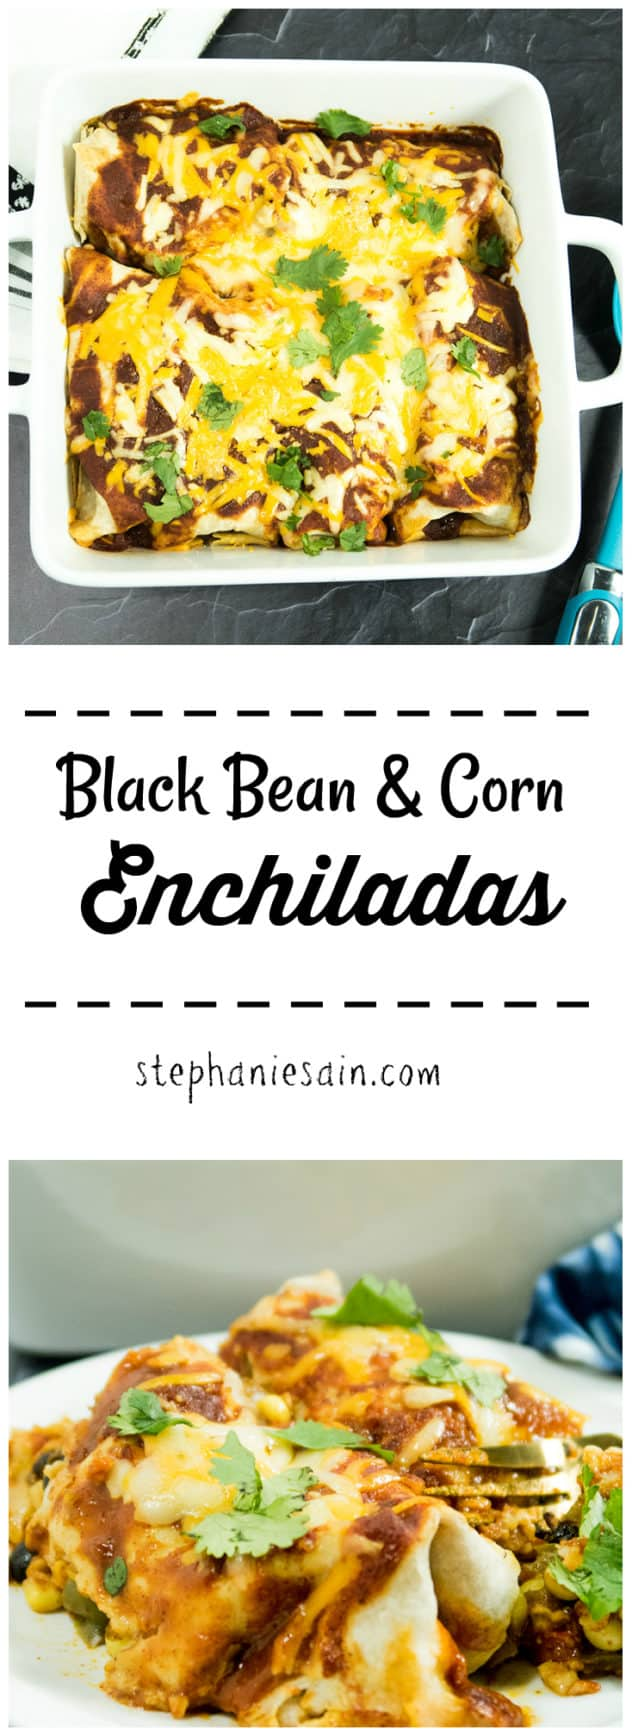 Black Bean & Corn Enchiladas are stuffed with fresh veggies and then topped with homemade enchilada sauce and cheese. Can be made ahead and also taste great as leftovers. Gluten free & Vegetarian.